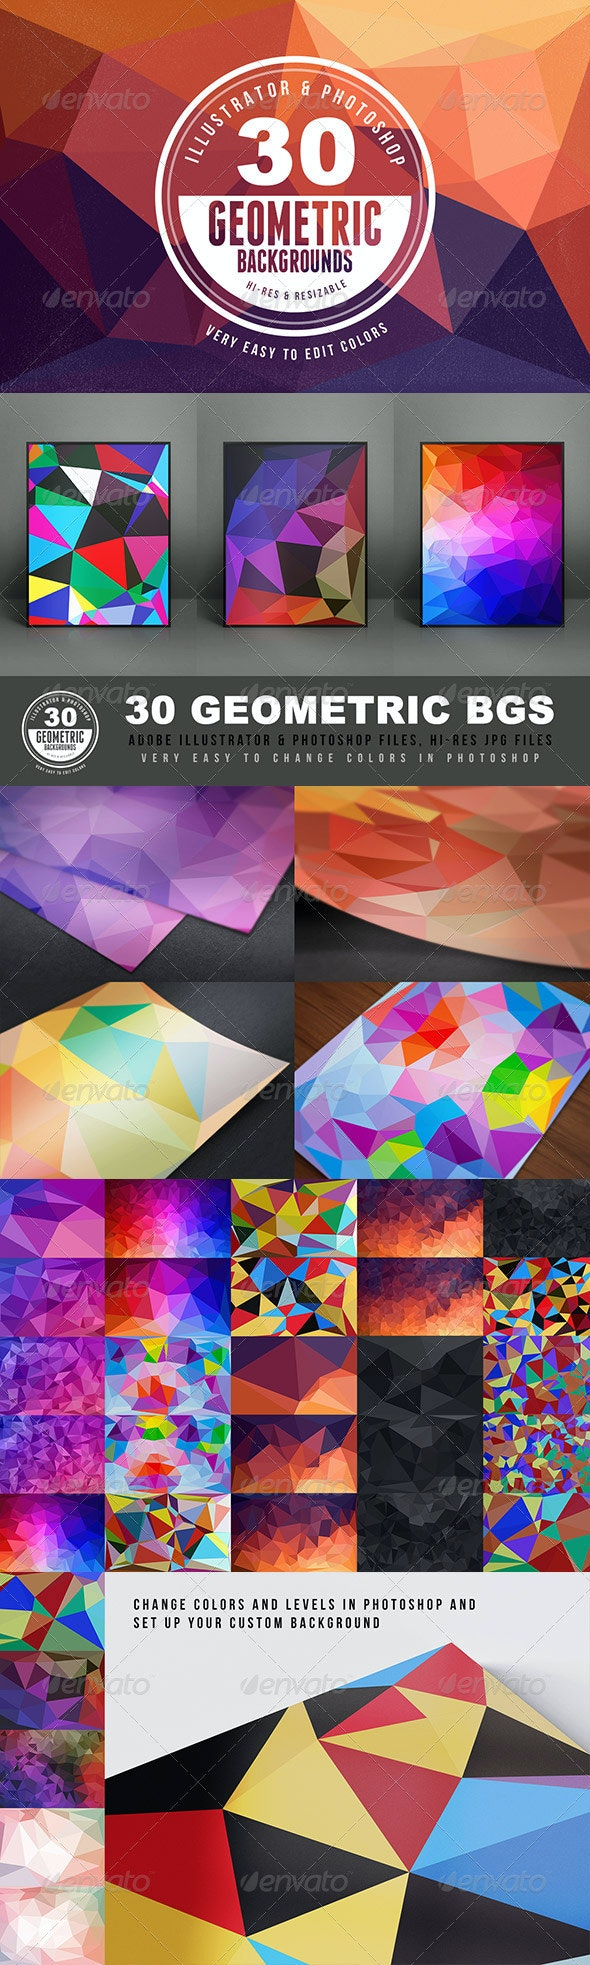 Geometric Backgrounds or Textures - Abstract Backgrounds